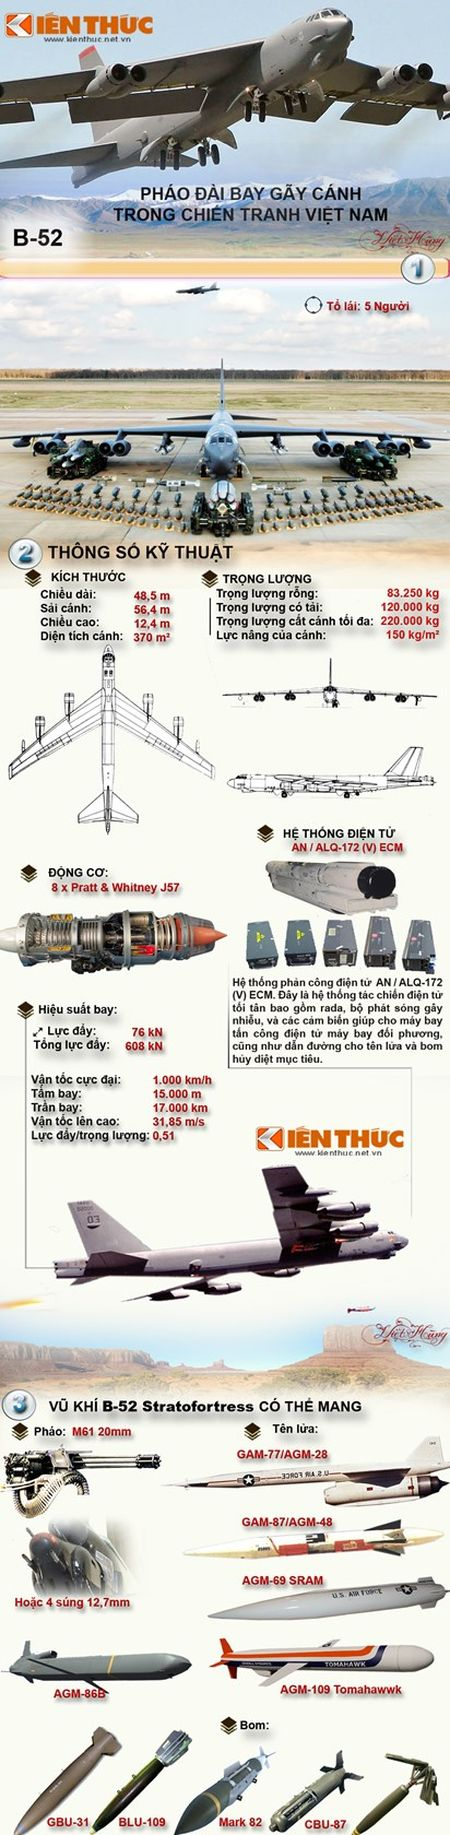 Infographic: Phao dai bay B-52 trong Chien tranh Viet Nam - Anh 1